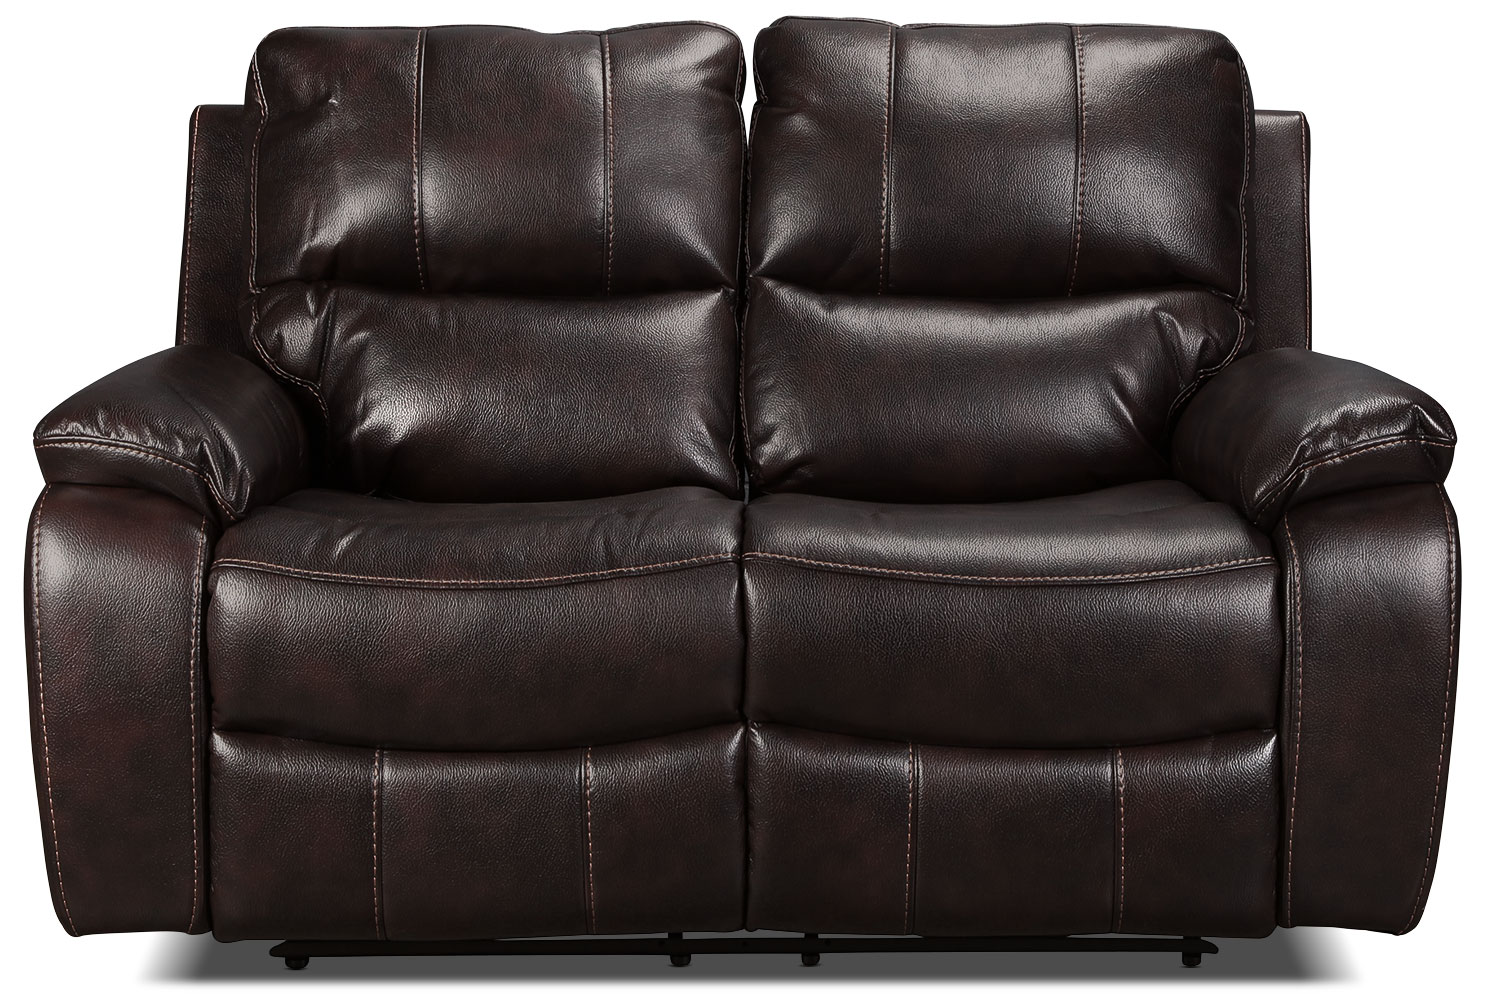 Kimberlee Power Reclining Loveseat - Dark Brown